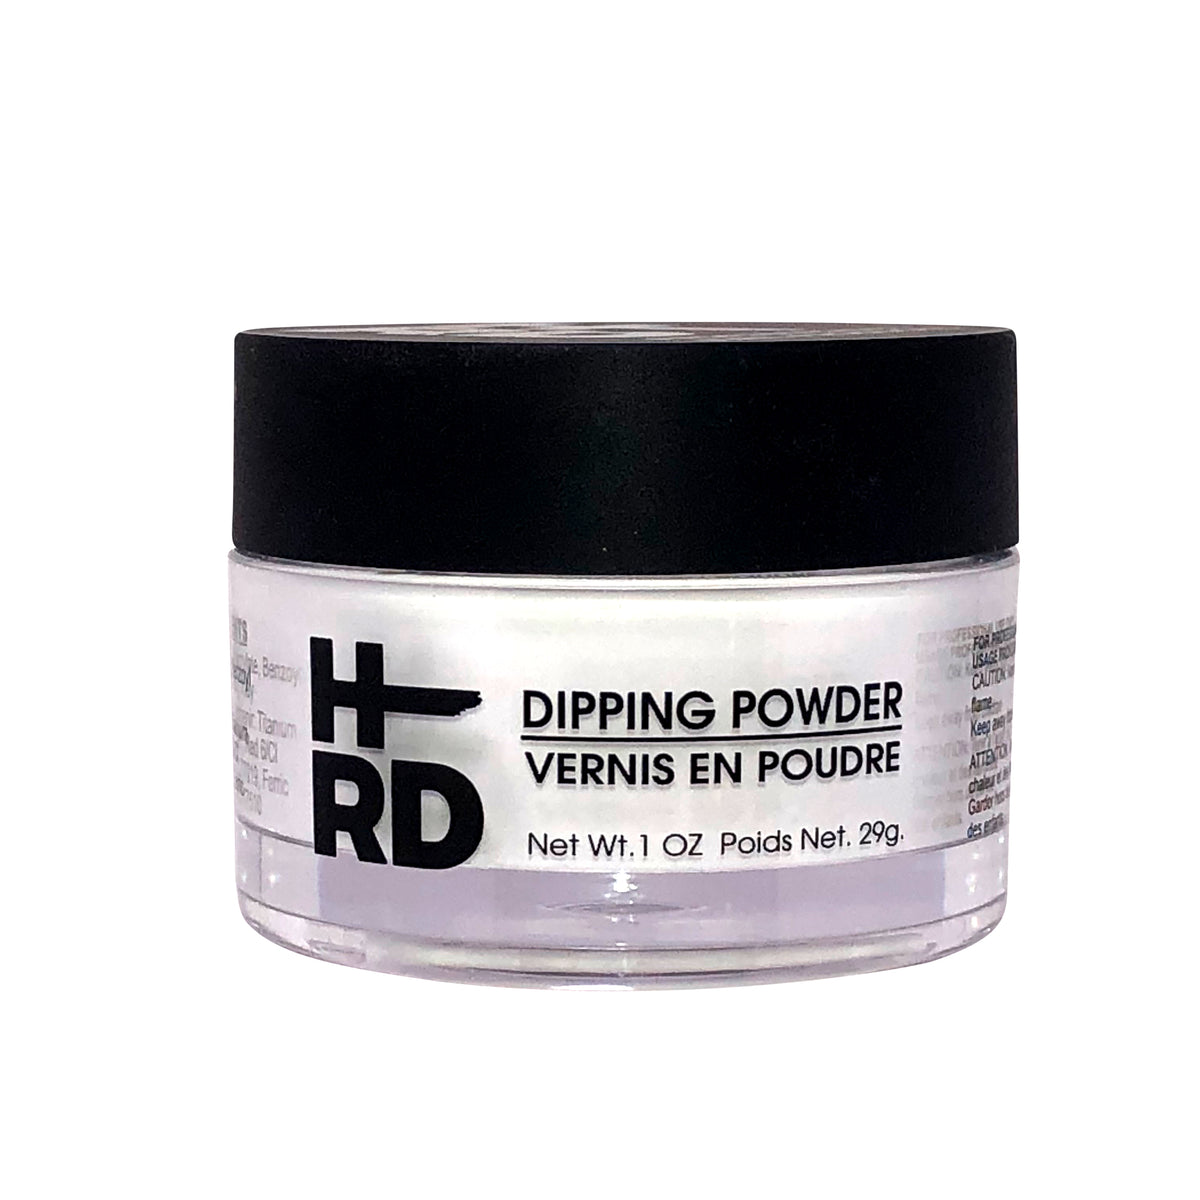 HRD-001 powder